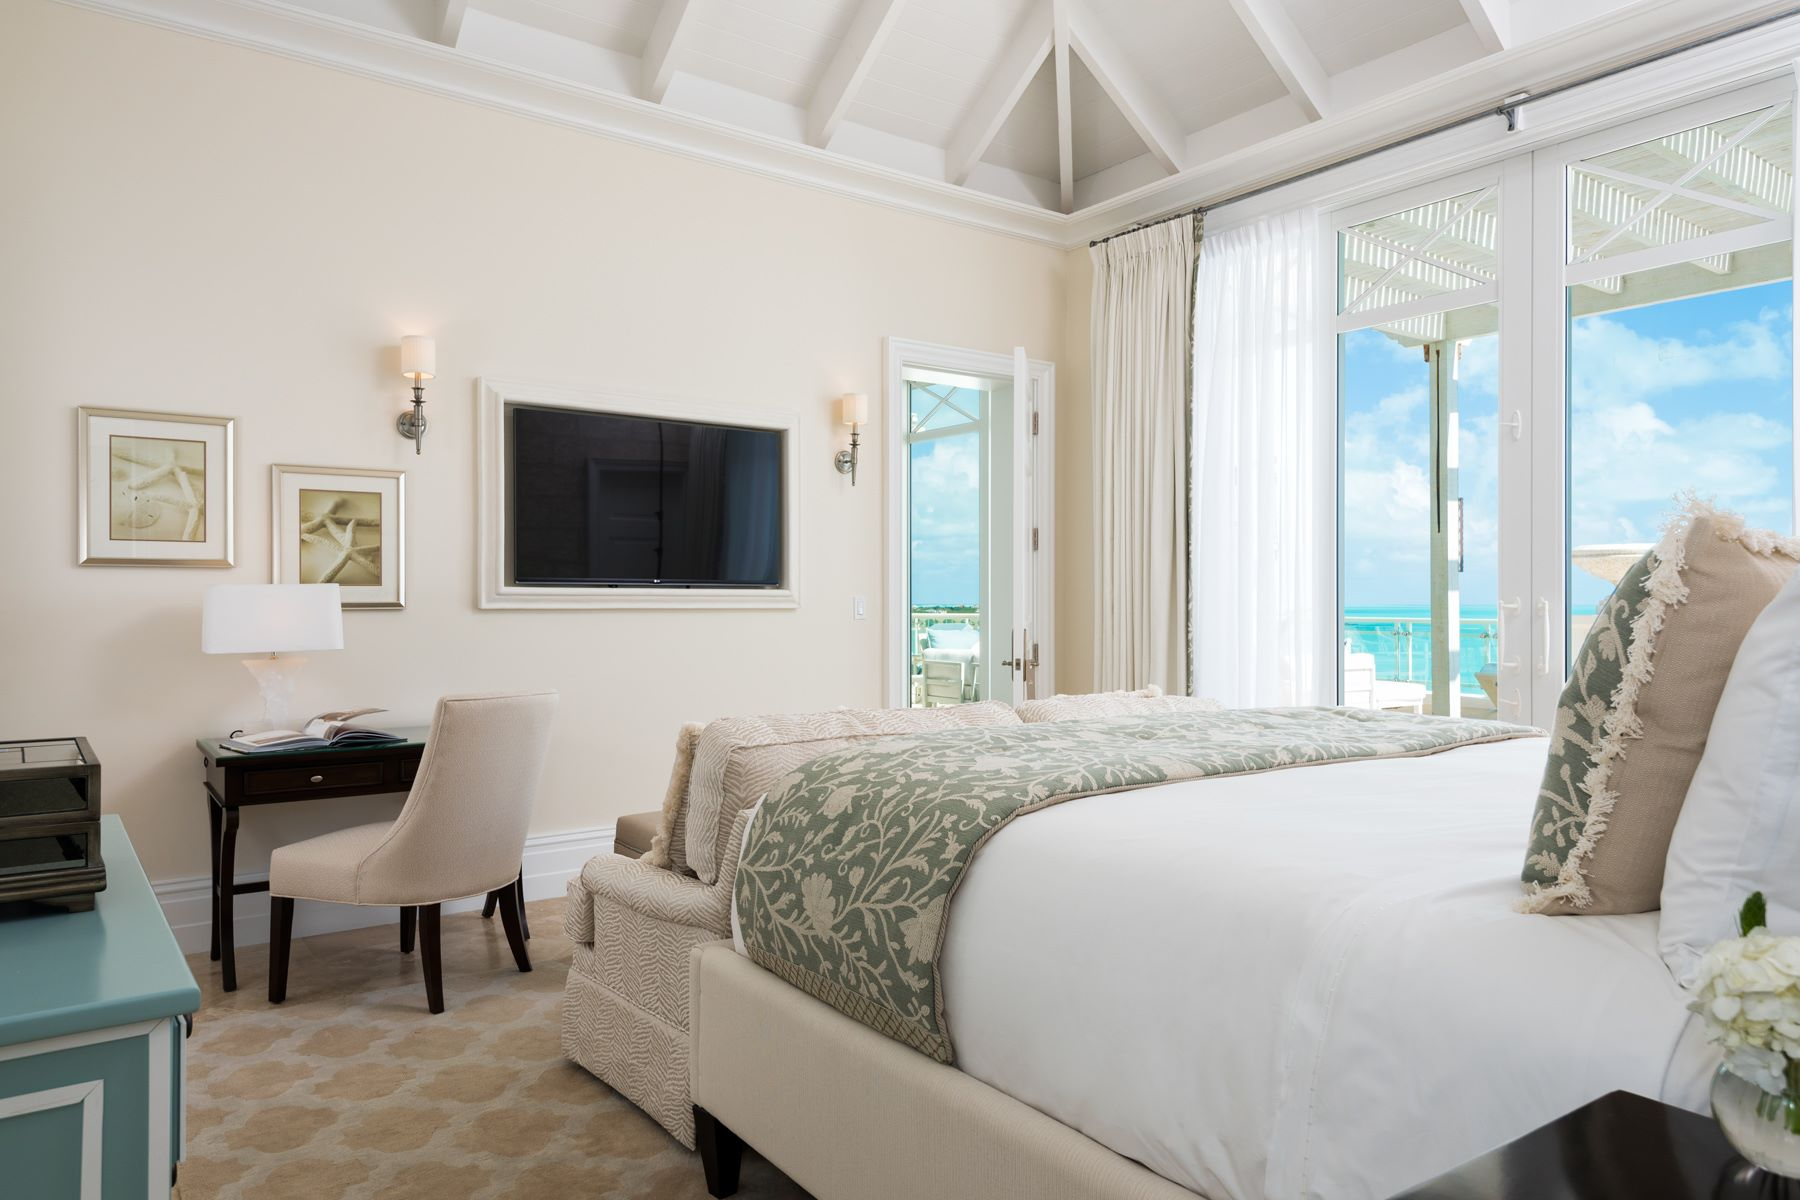 Additional photo for property listing at The Shore Club ~ Penthouse 1504.06.09 The Shore Club, Penthouse 1504.06.09 Long Bay, Providenciales TKCA 1ZZ Turks And Caicos Islands